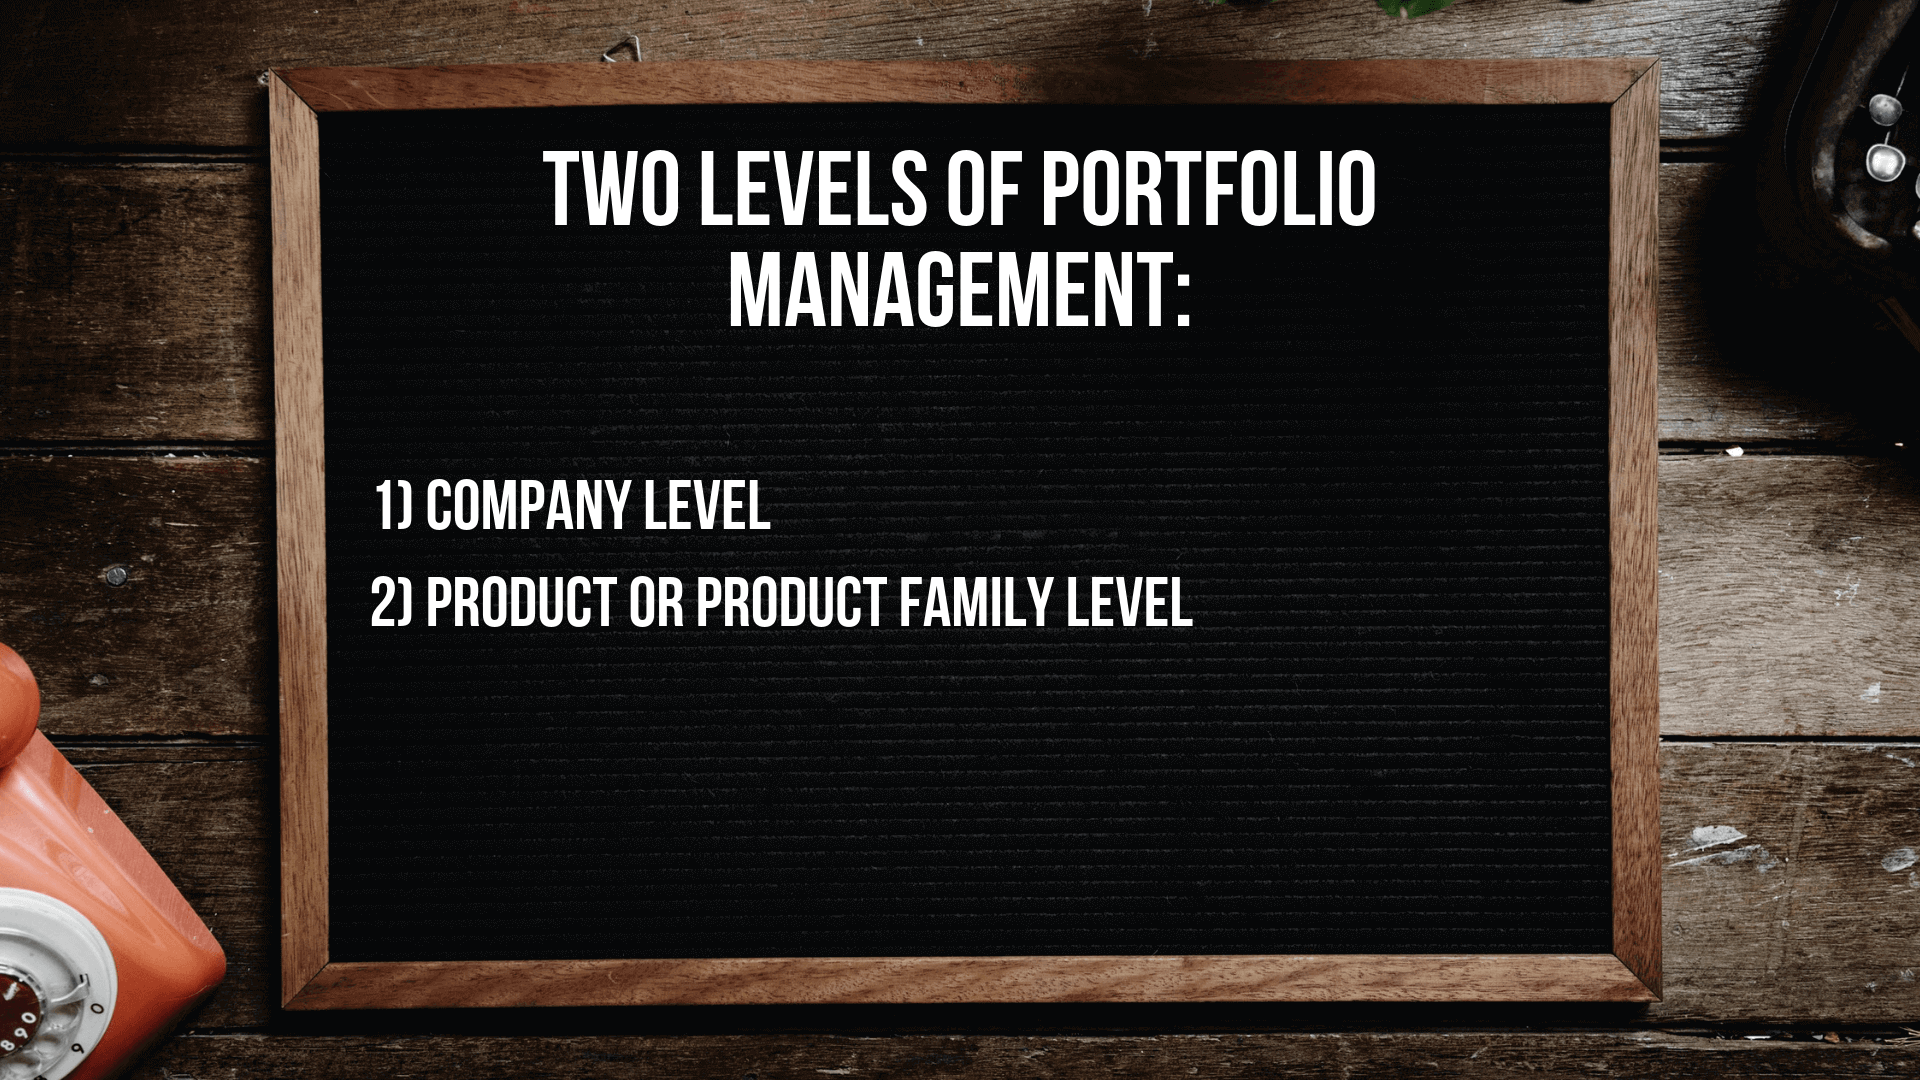 Two levels of portfolio management